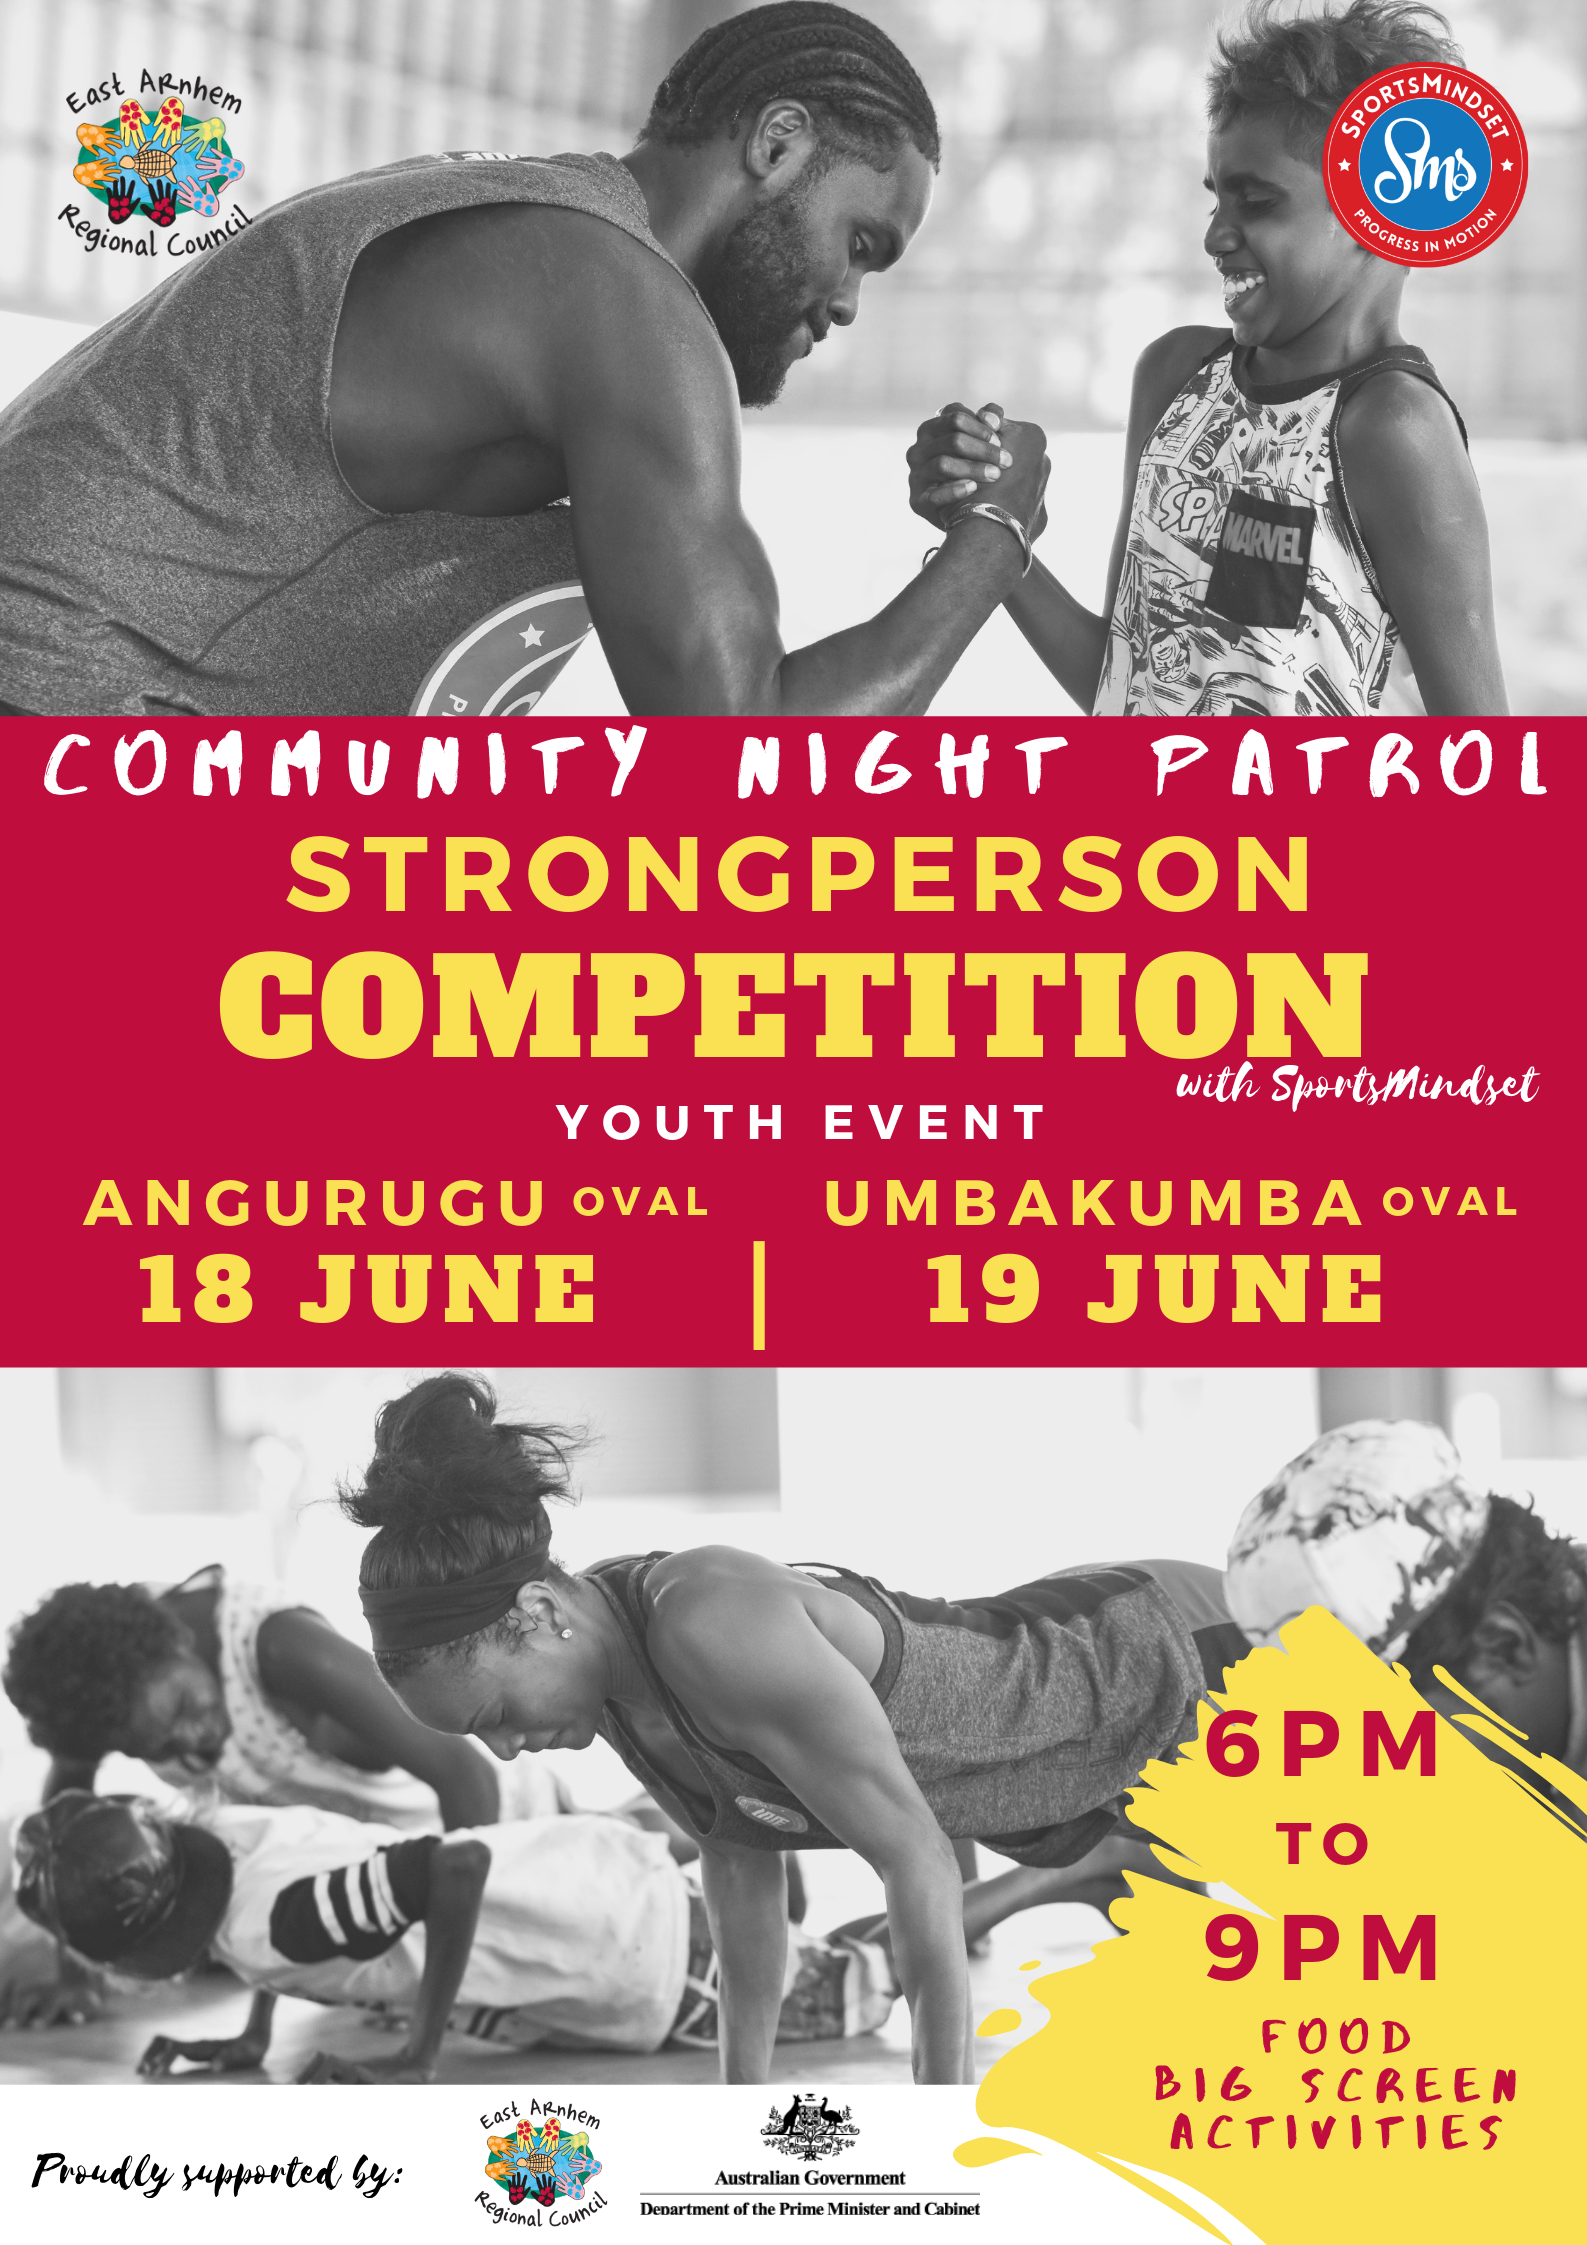 youth event - Community Strongperson Competition